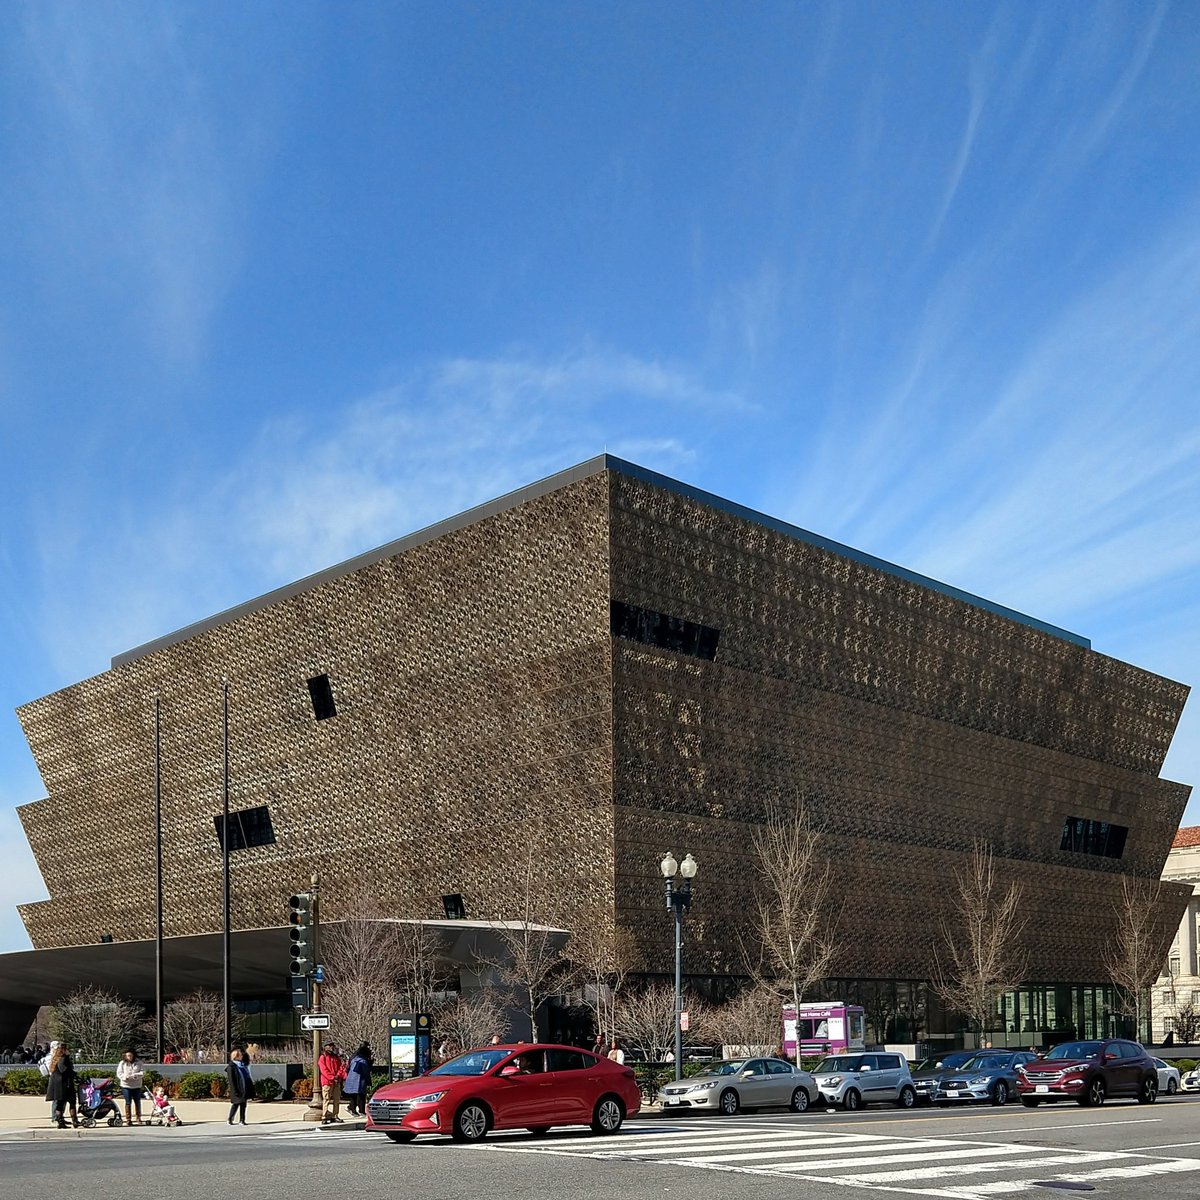 Last day in DC - revisiting the National Museum of African American History.